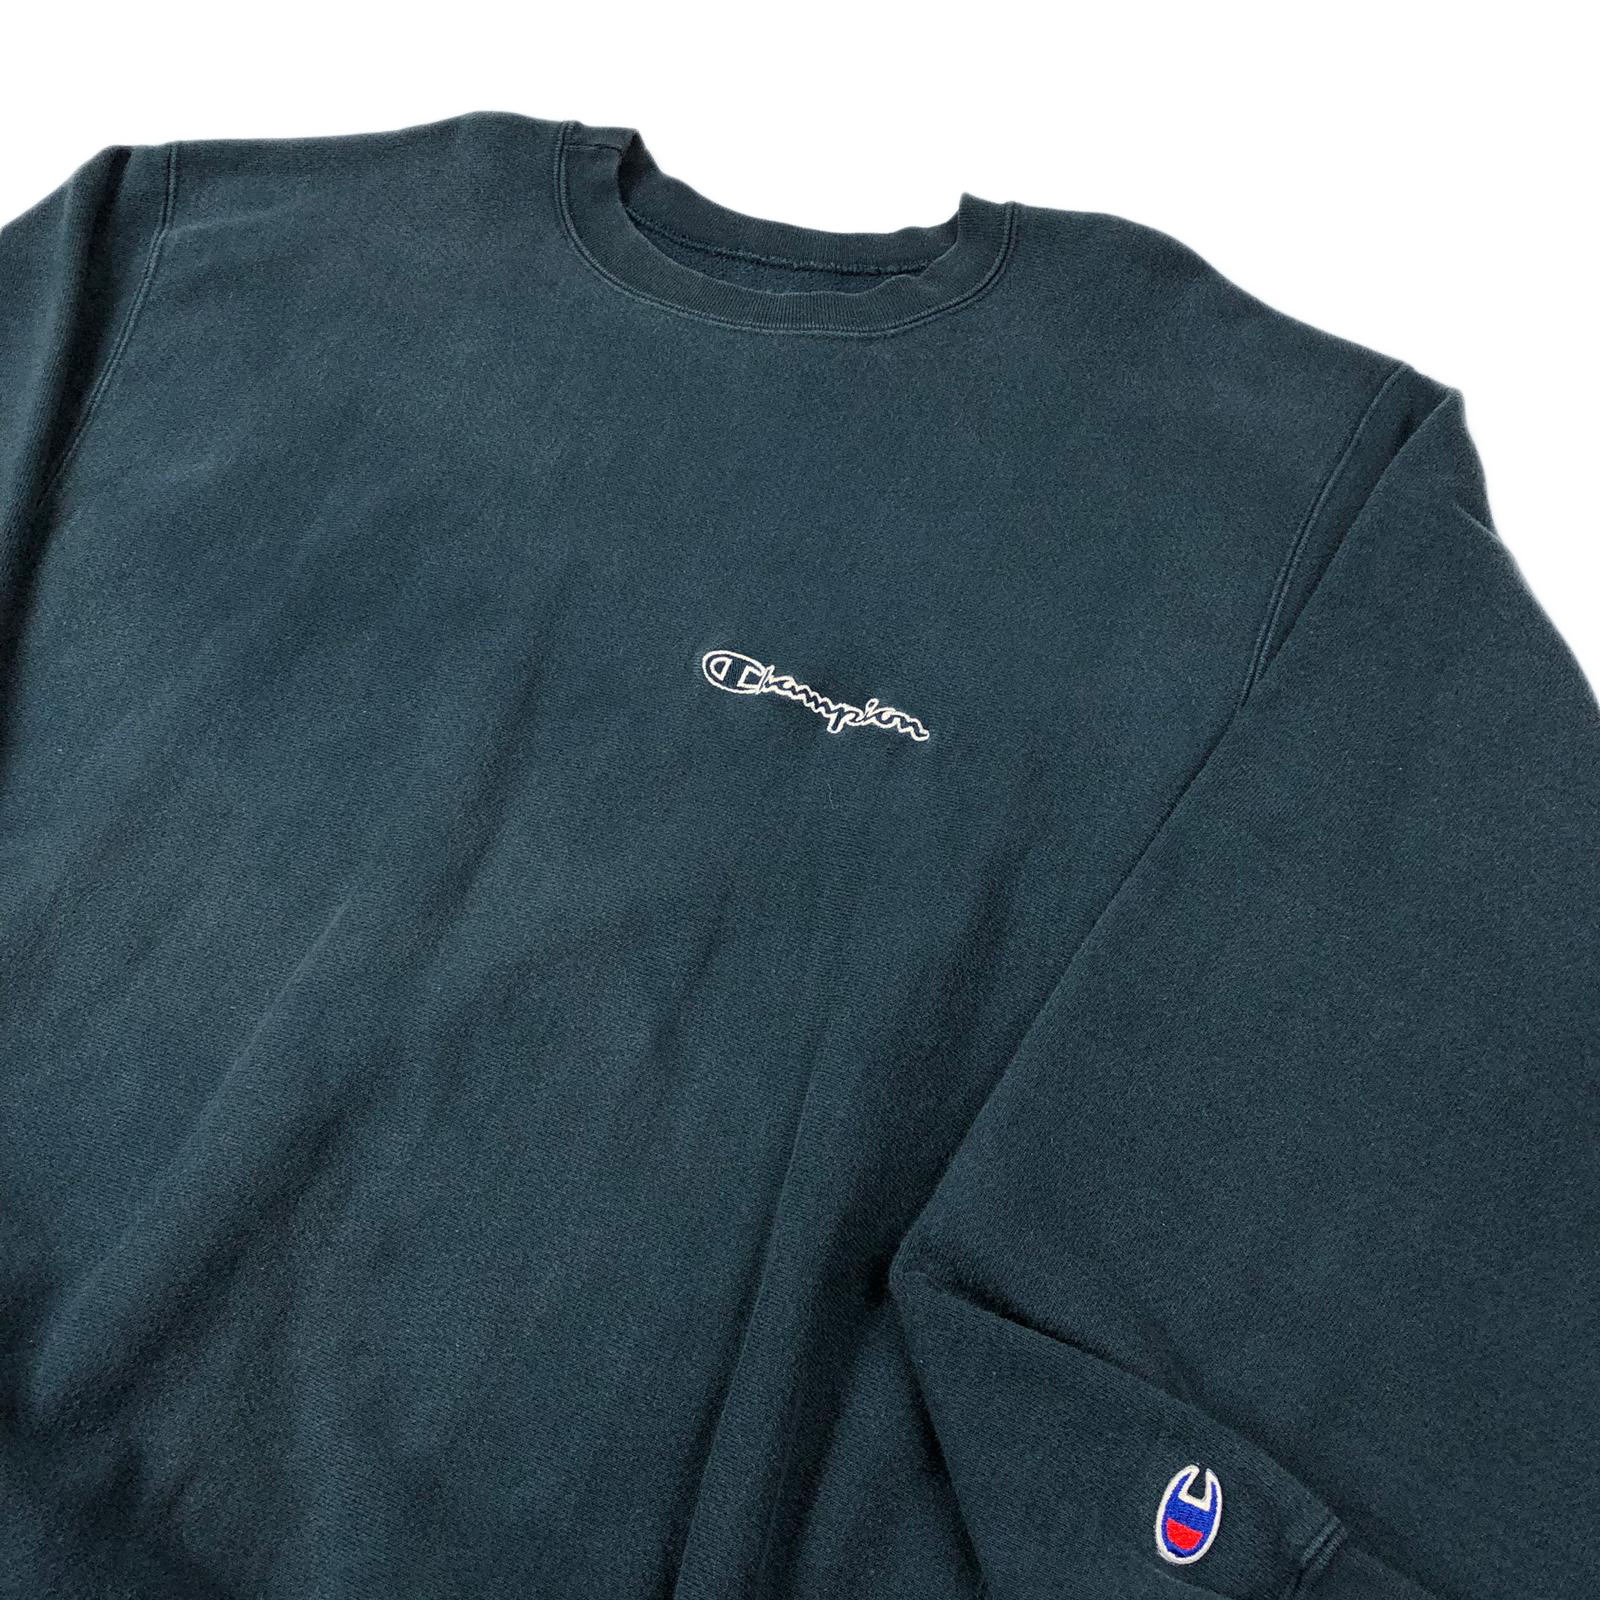 Champion sweatshirt